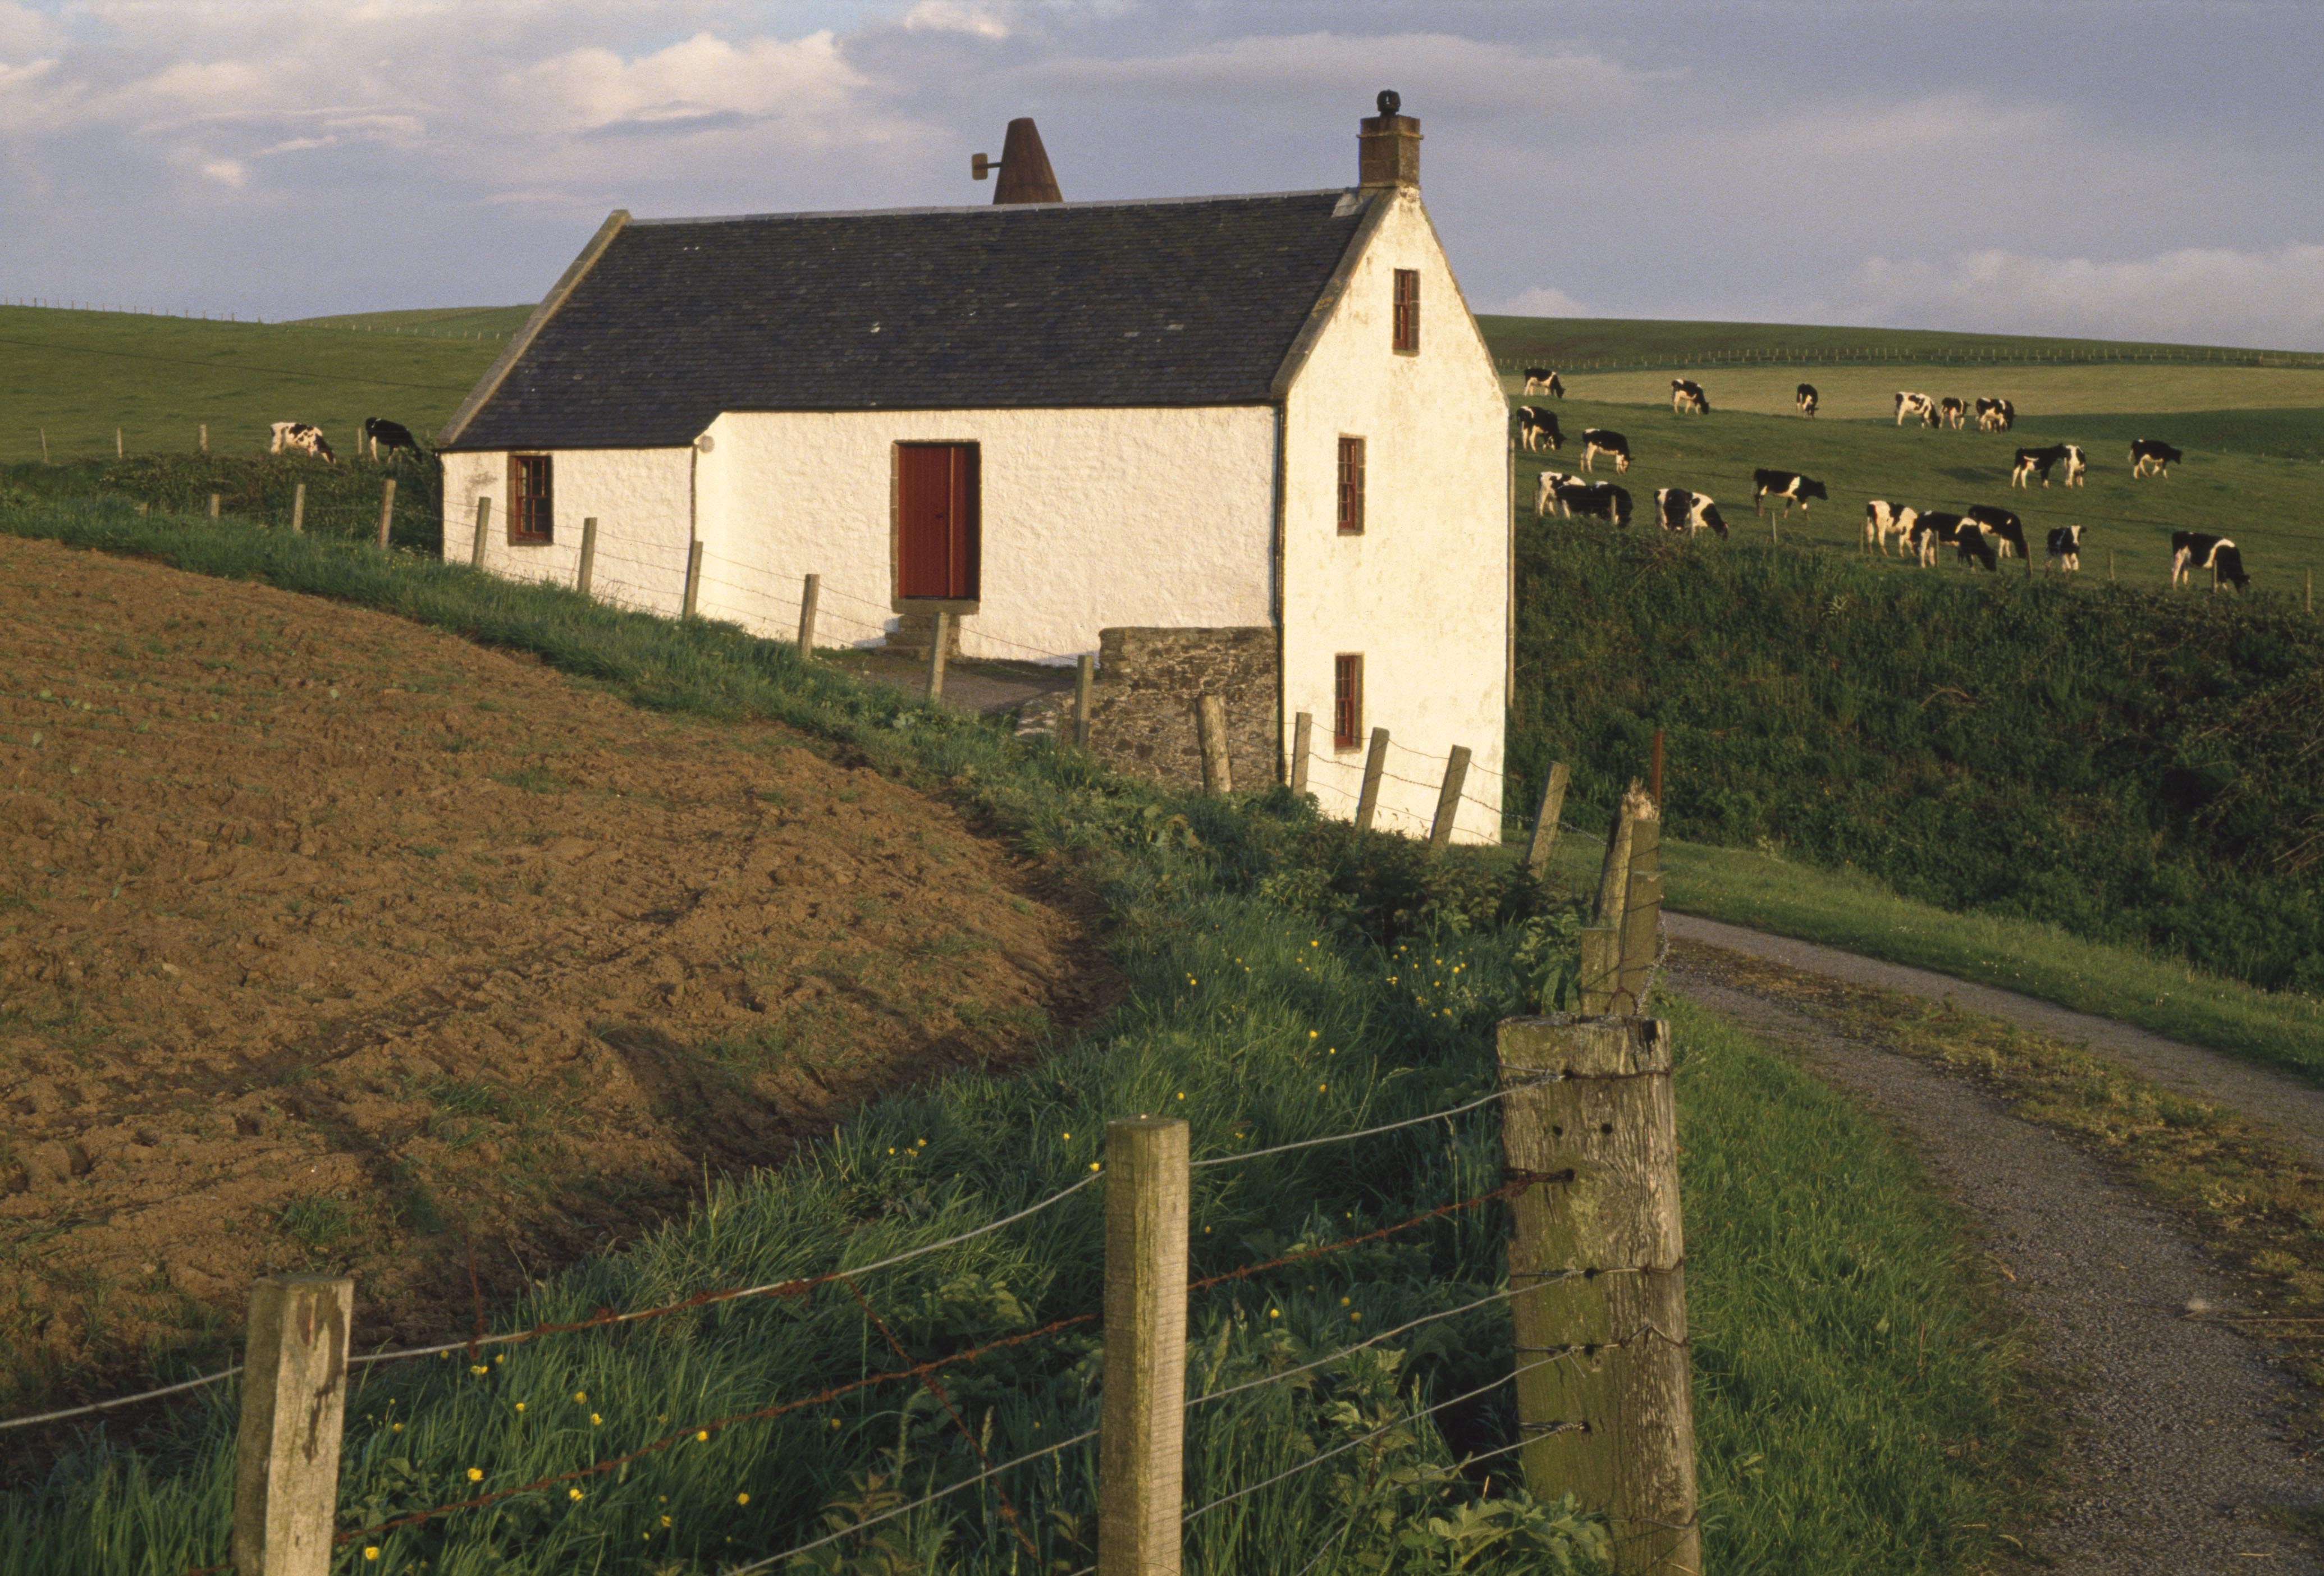 Tangy Mill in Kintyre, Scotland, 1995